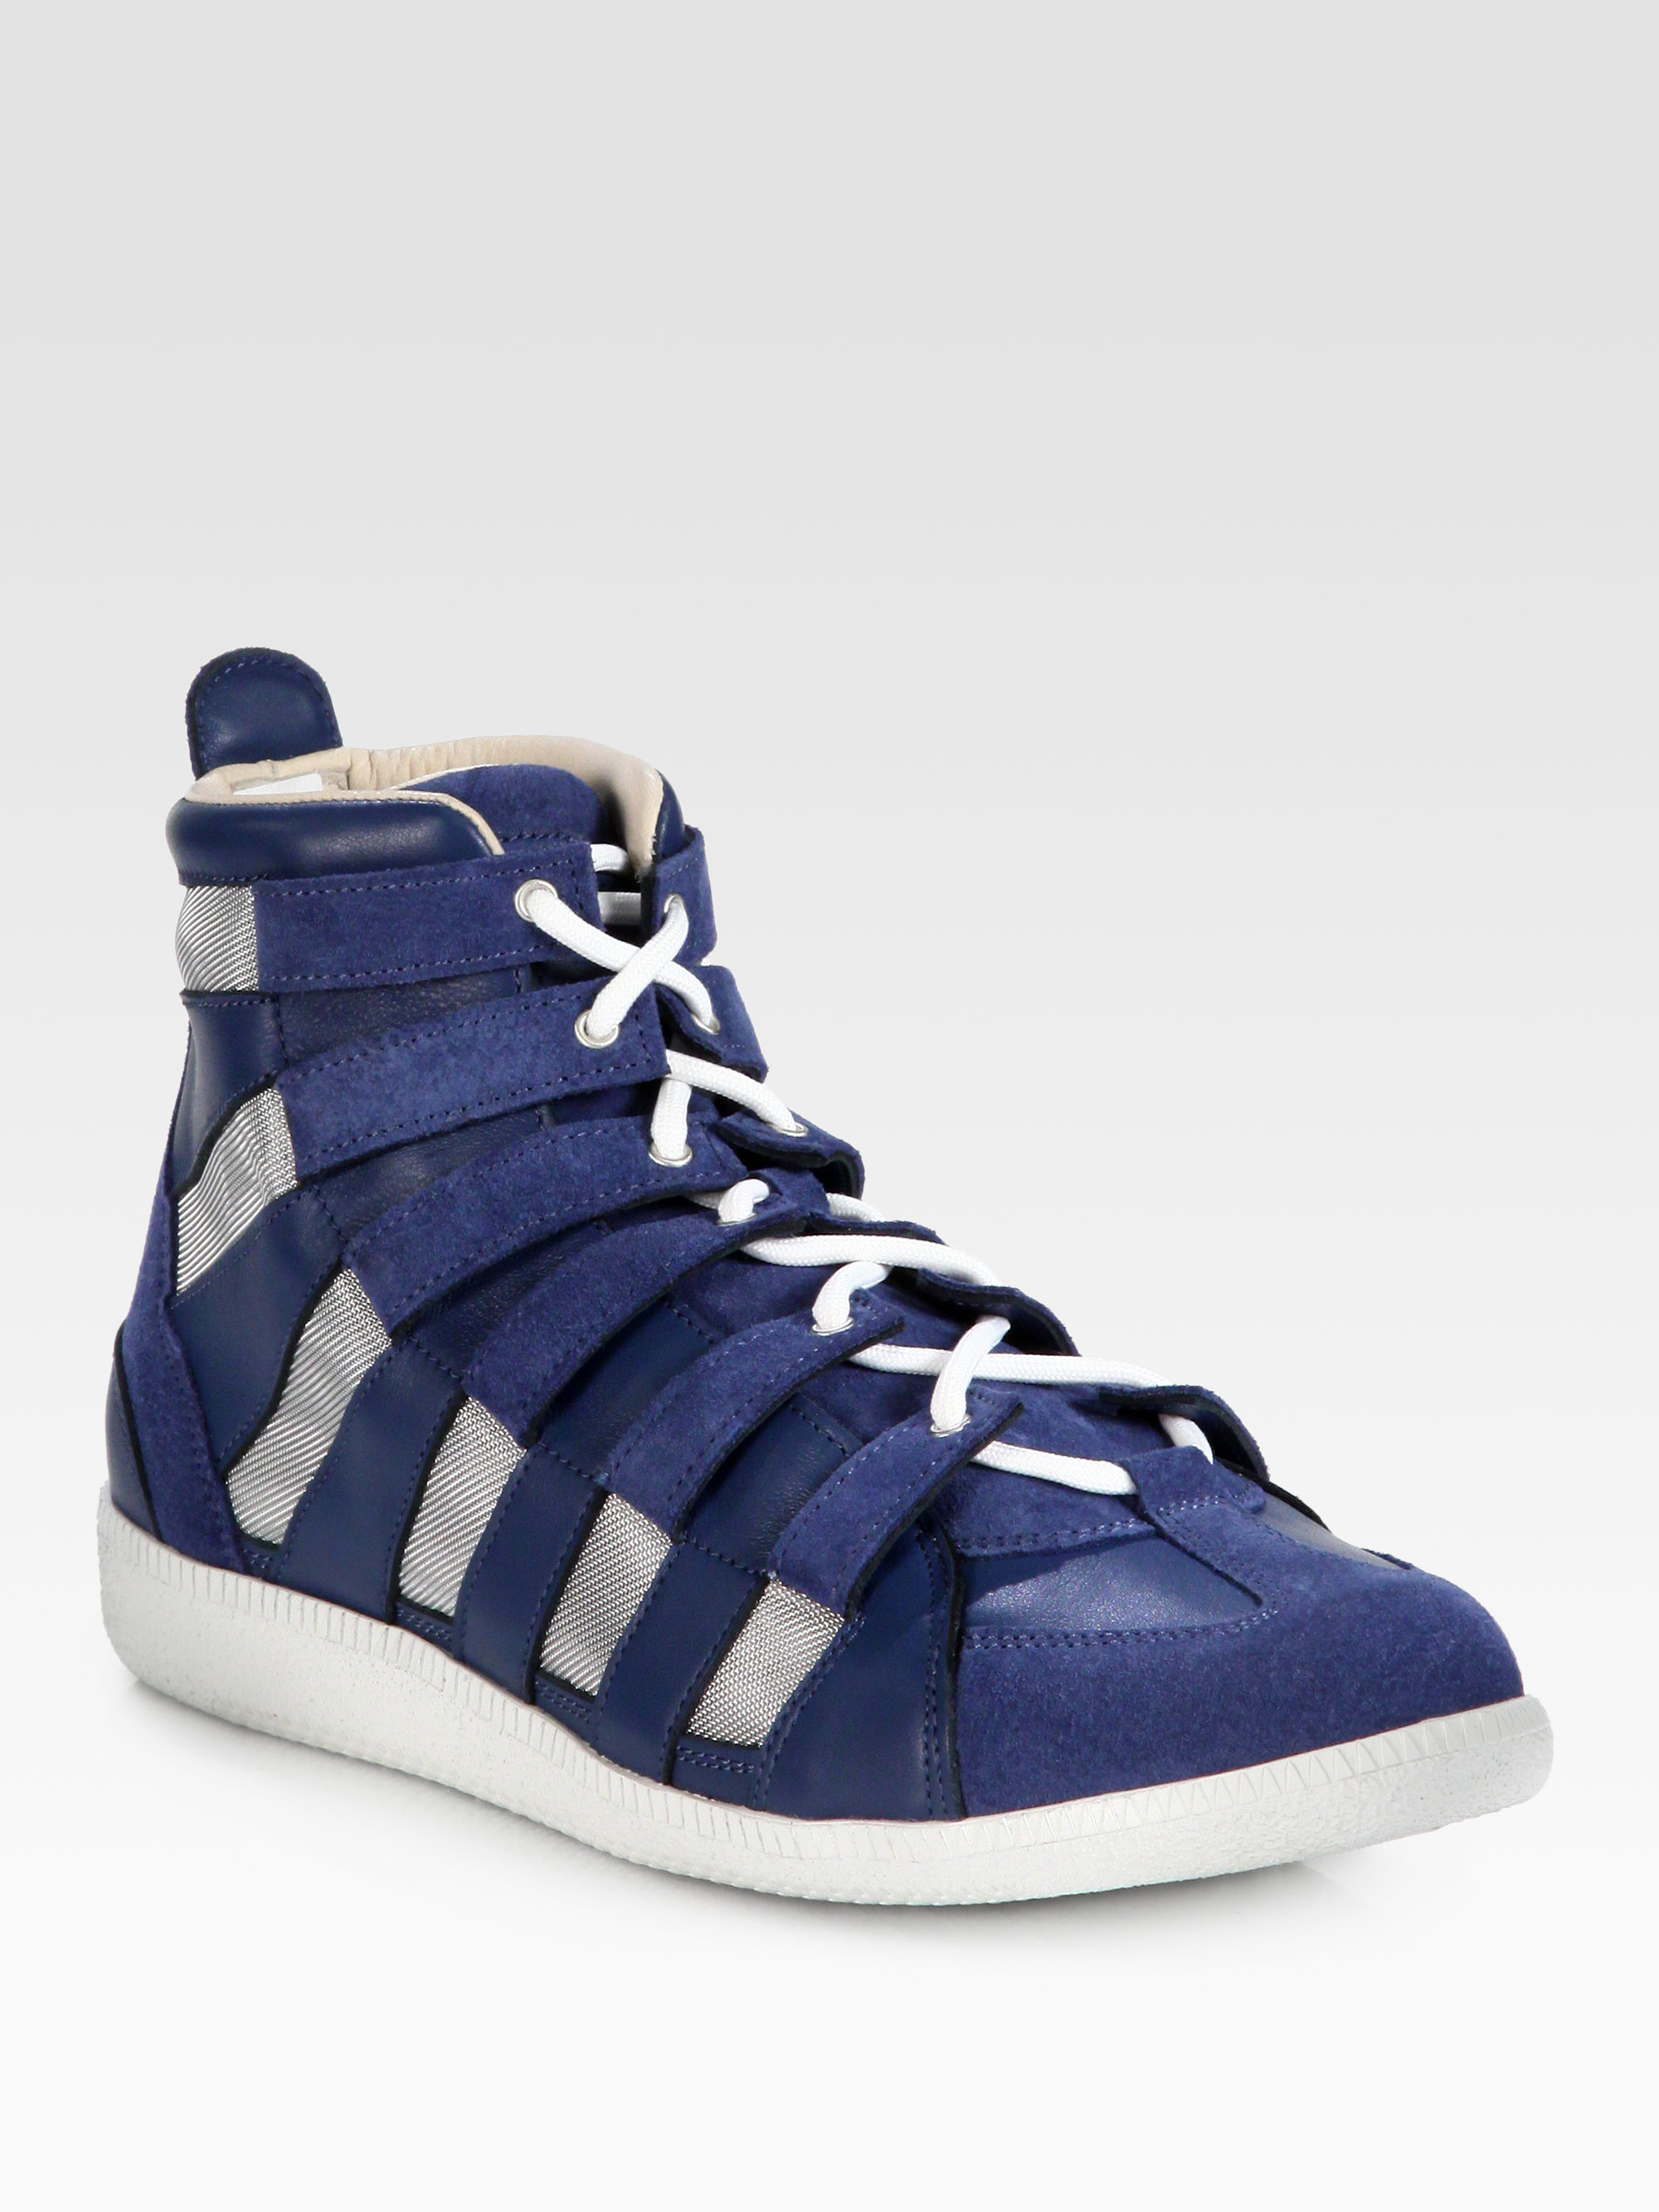 maison martin margiela leather and suede hightop sneakers in blue for men lyst. Black Bedroom Furniture Sets. Home Design Ideas